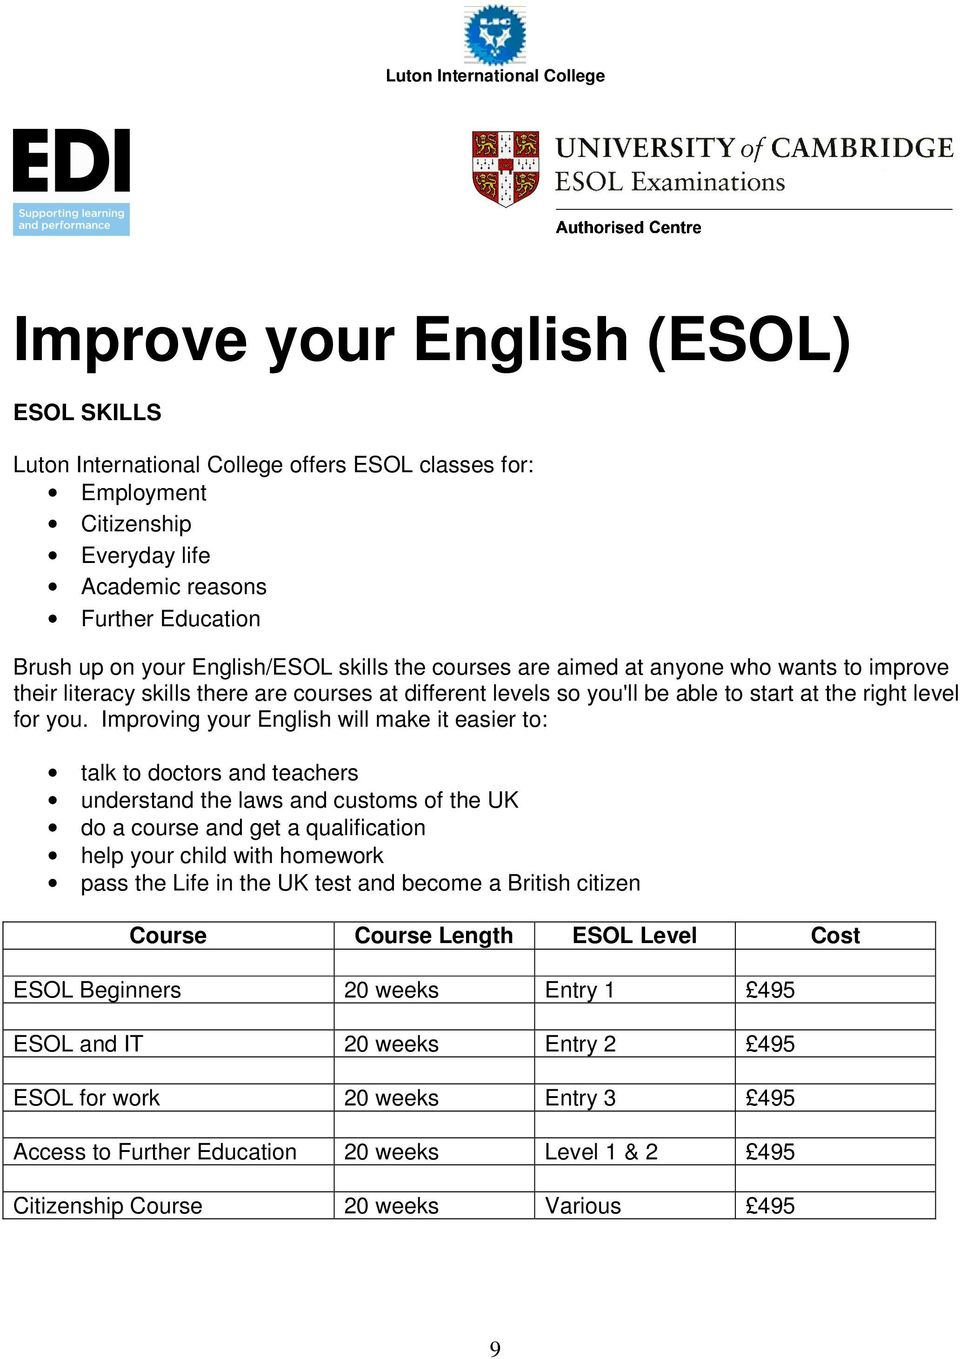 Improving your English will make it easier to: talk to doctors and teachers understand the laws and customs of the UK do a course and get a qualification help your child with homework pass the Life